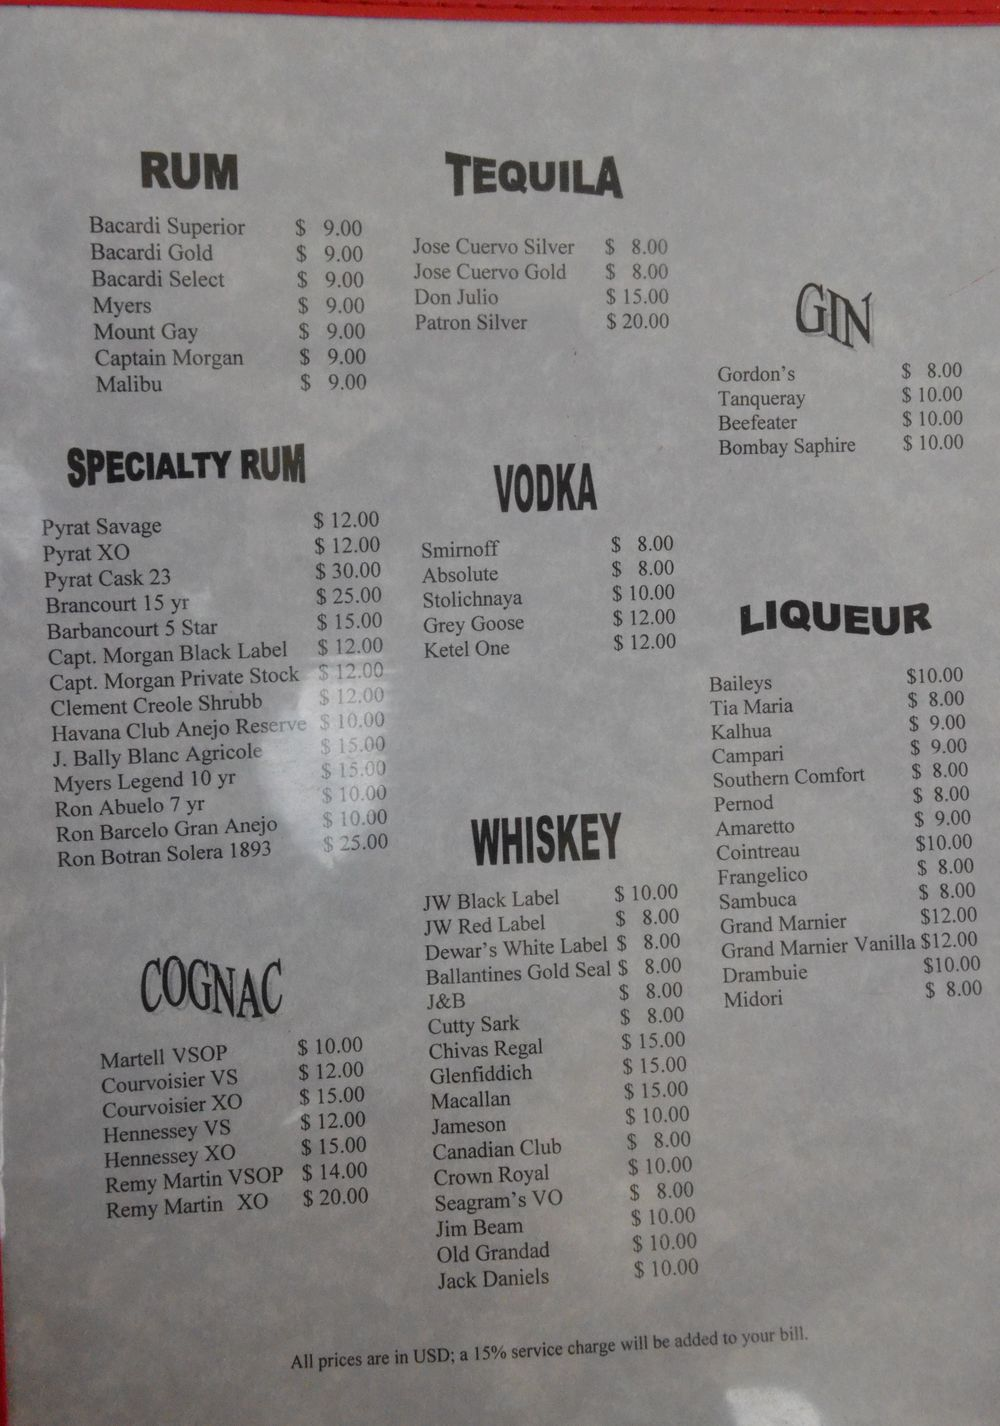 Smokey's Menu - Liquor.jpg